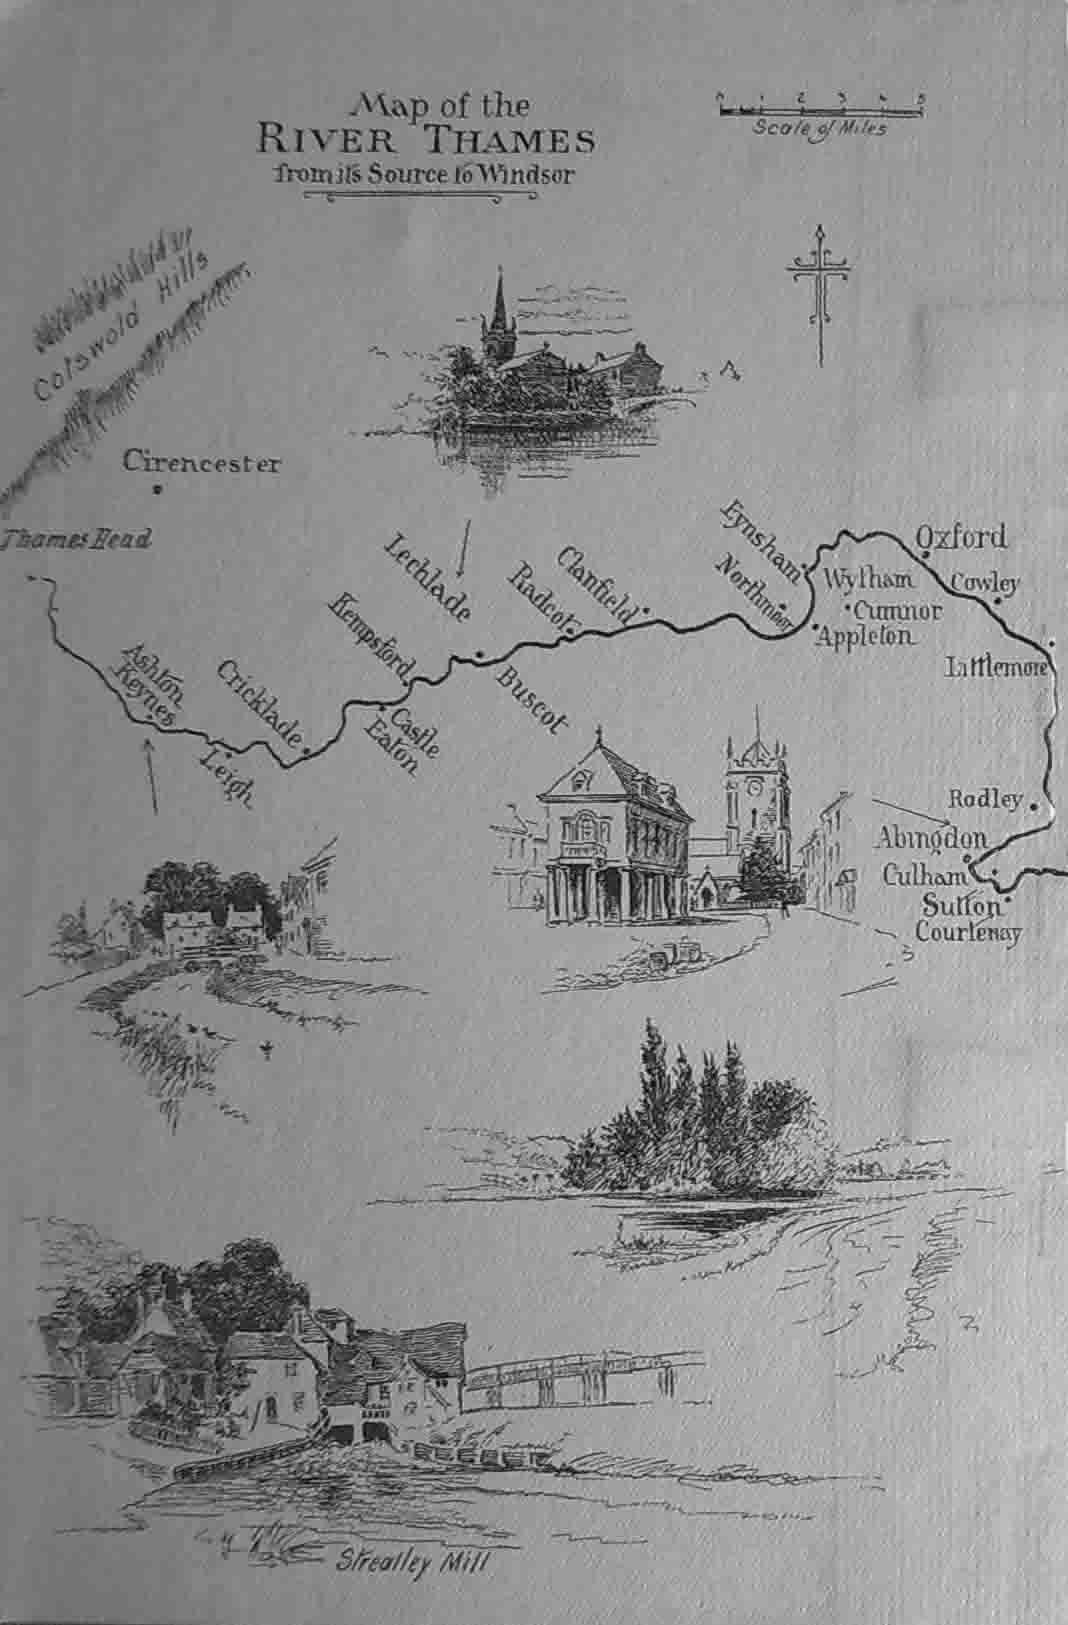 Thames Map, Walter Higgins, 1923